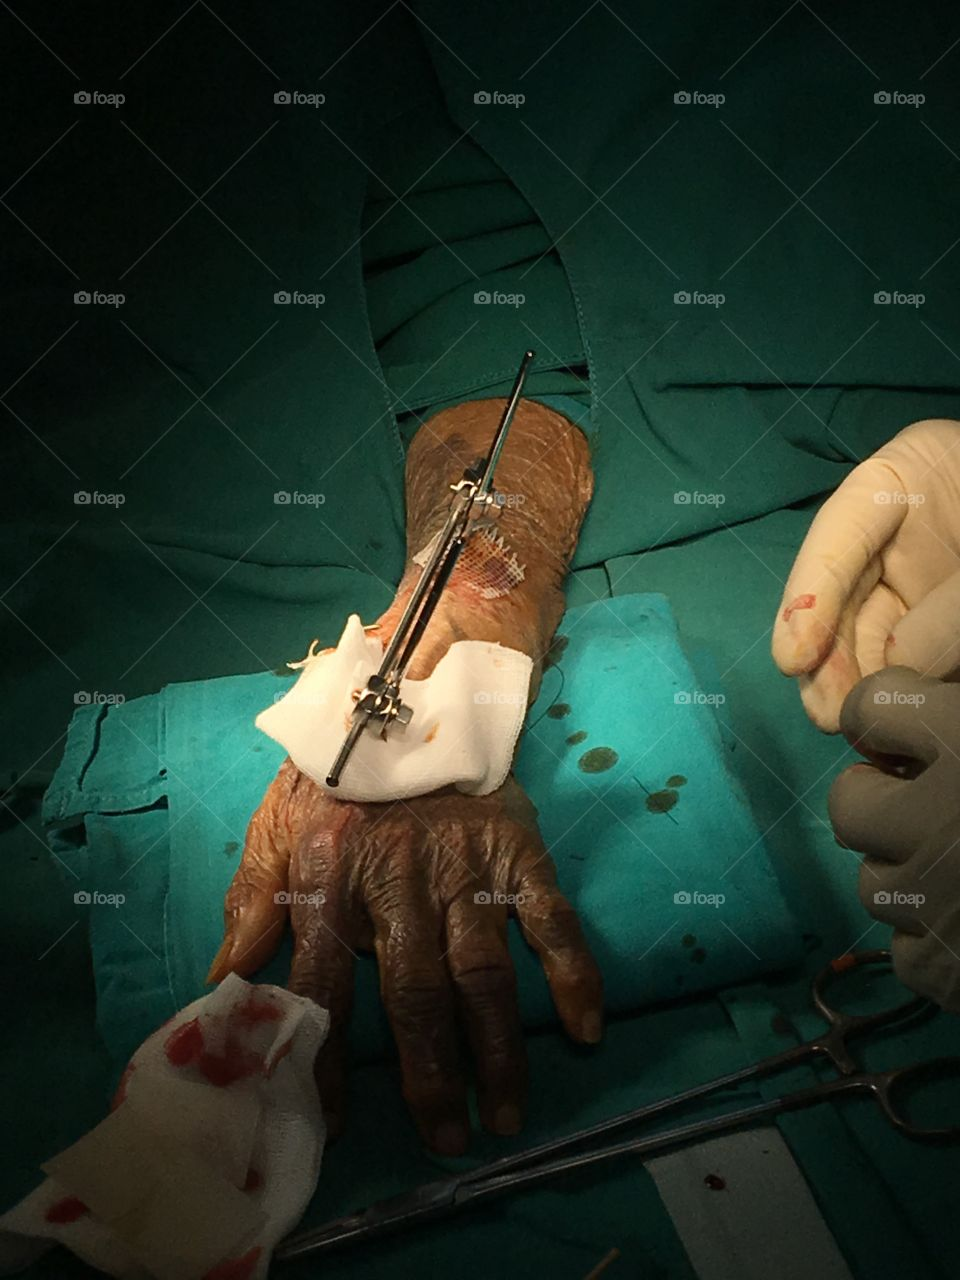 Person's burnt hand in operation theater